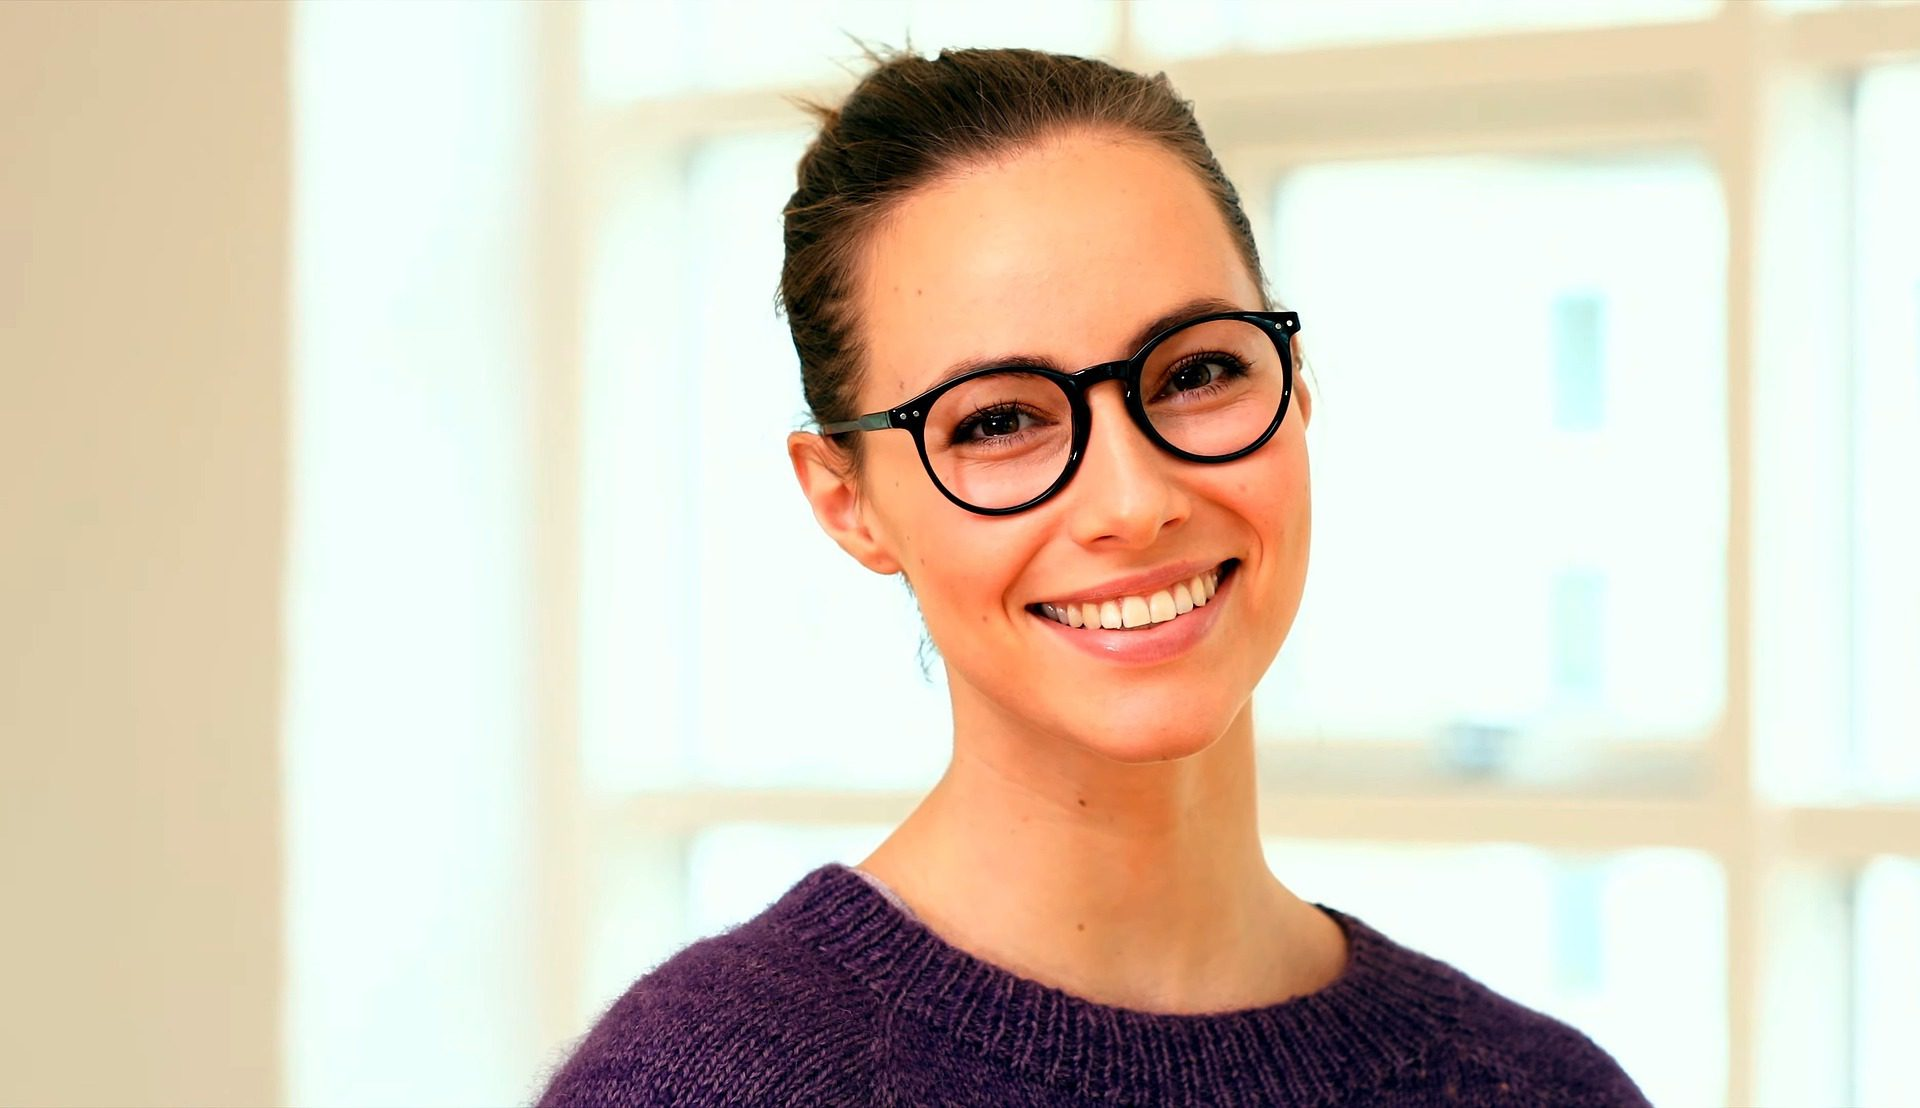 Brunette woman wearing black rim circle glasses with white teeth smiling at the camera in front of a window in a white room